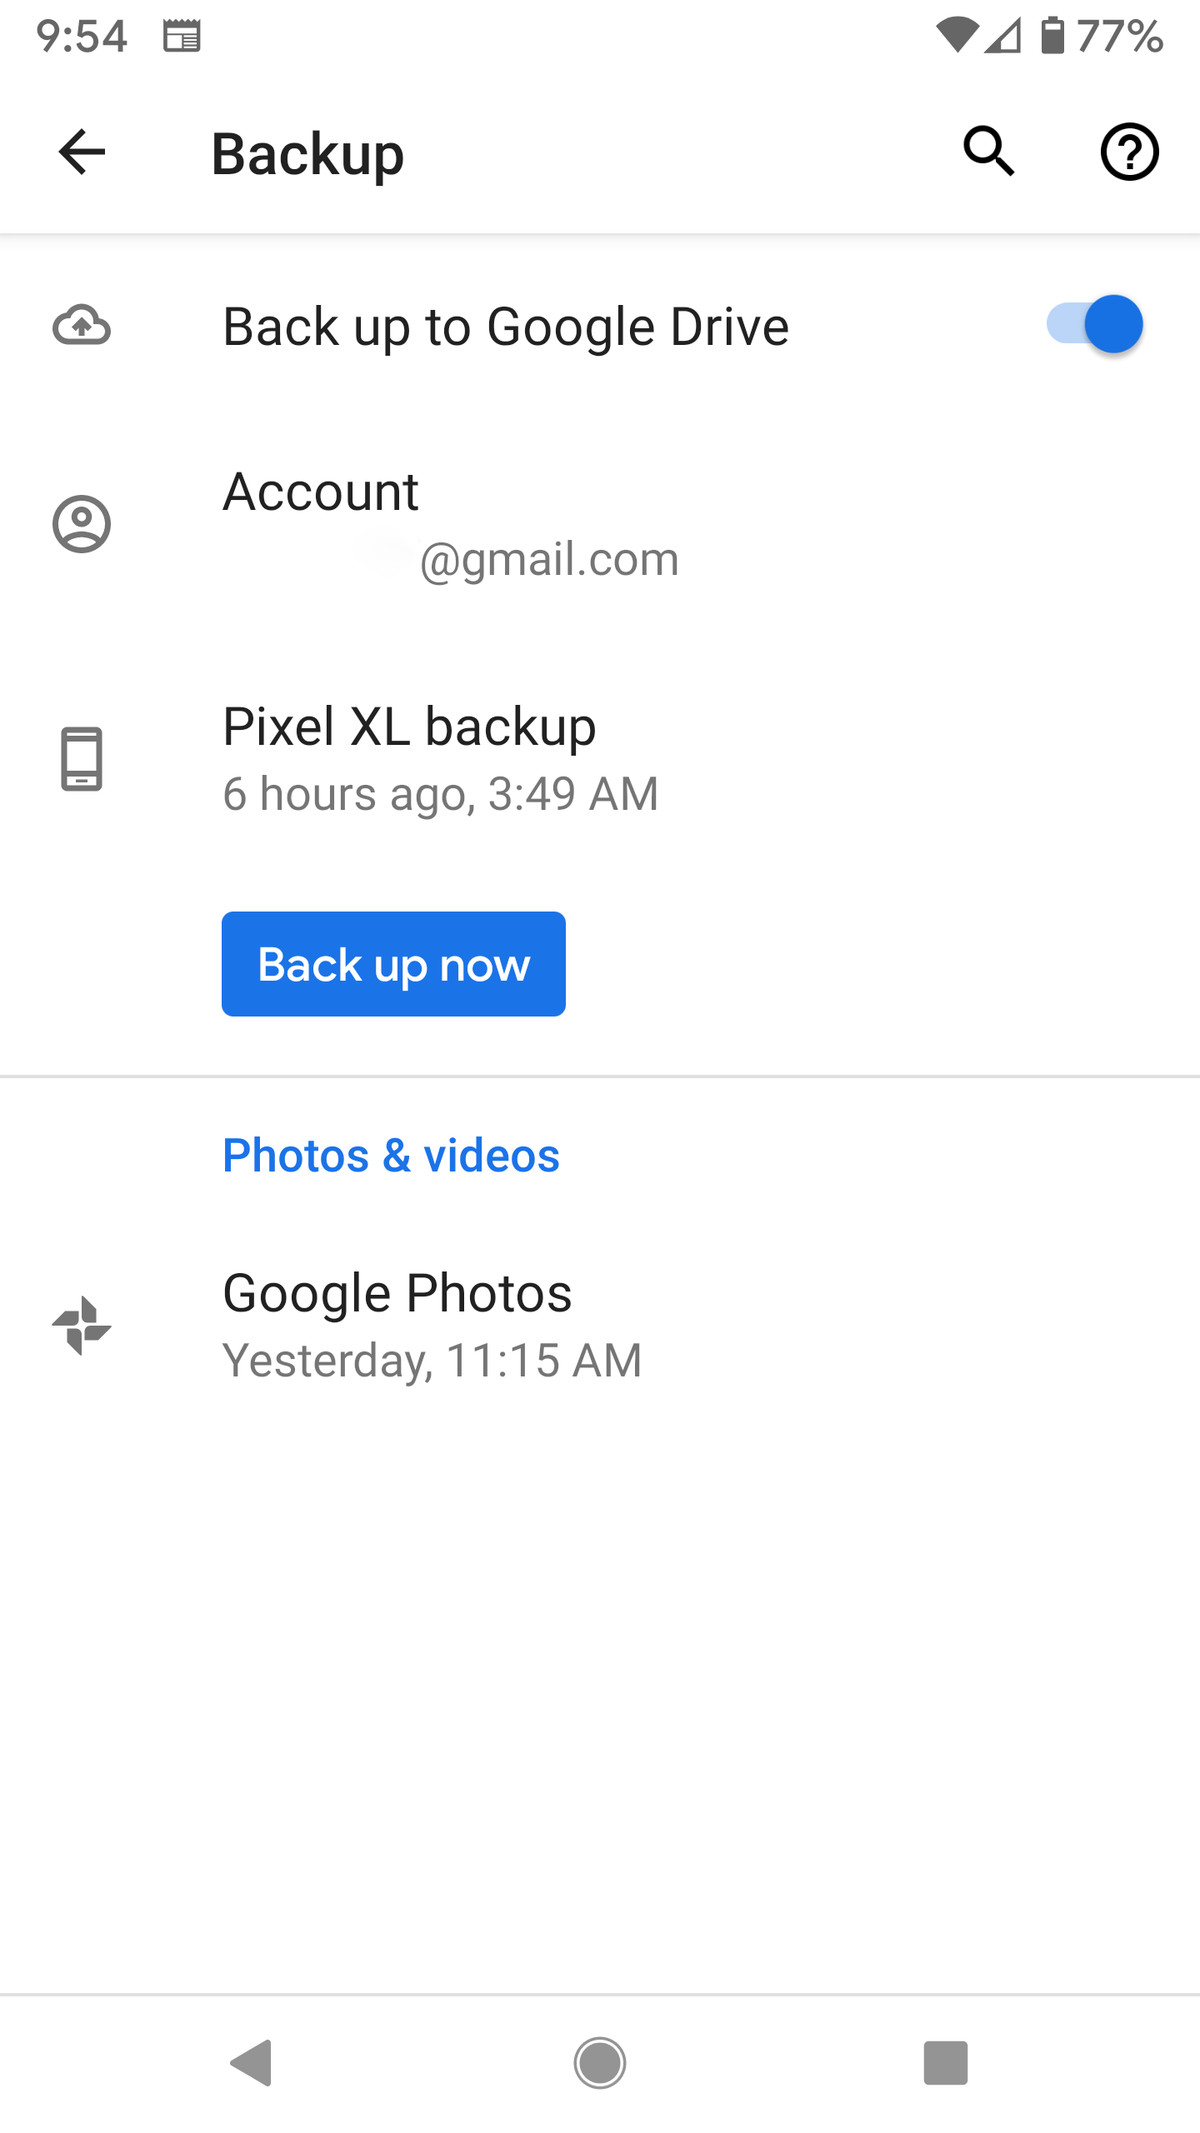 You can back up your app data, call history, and other info to your Google Drive.